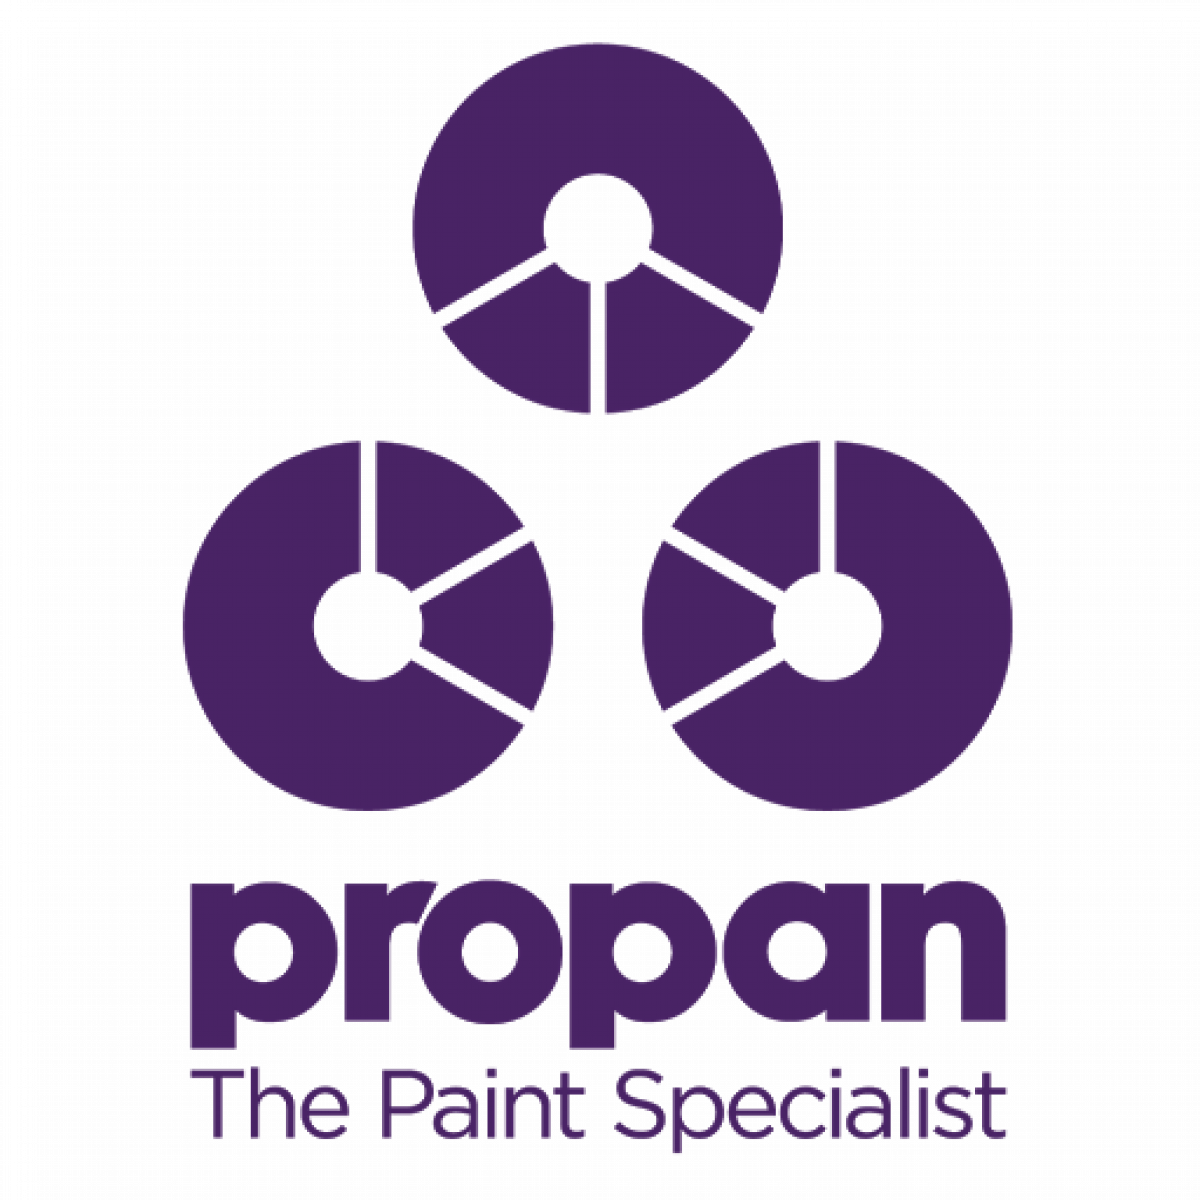 Mbna18 Propan Raya The Paint Specialist Microban Partner